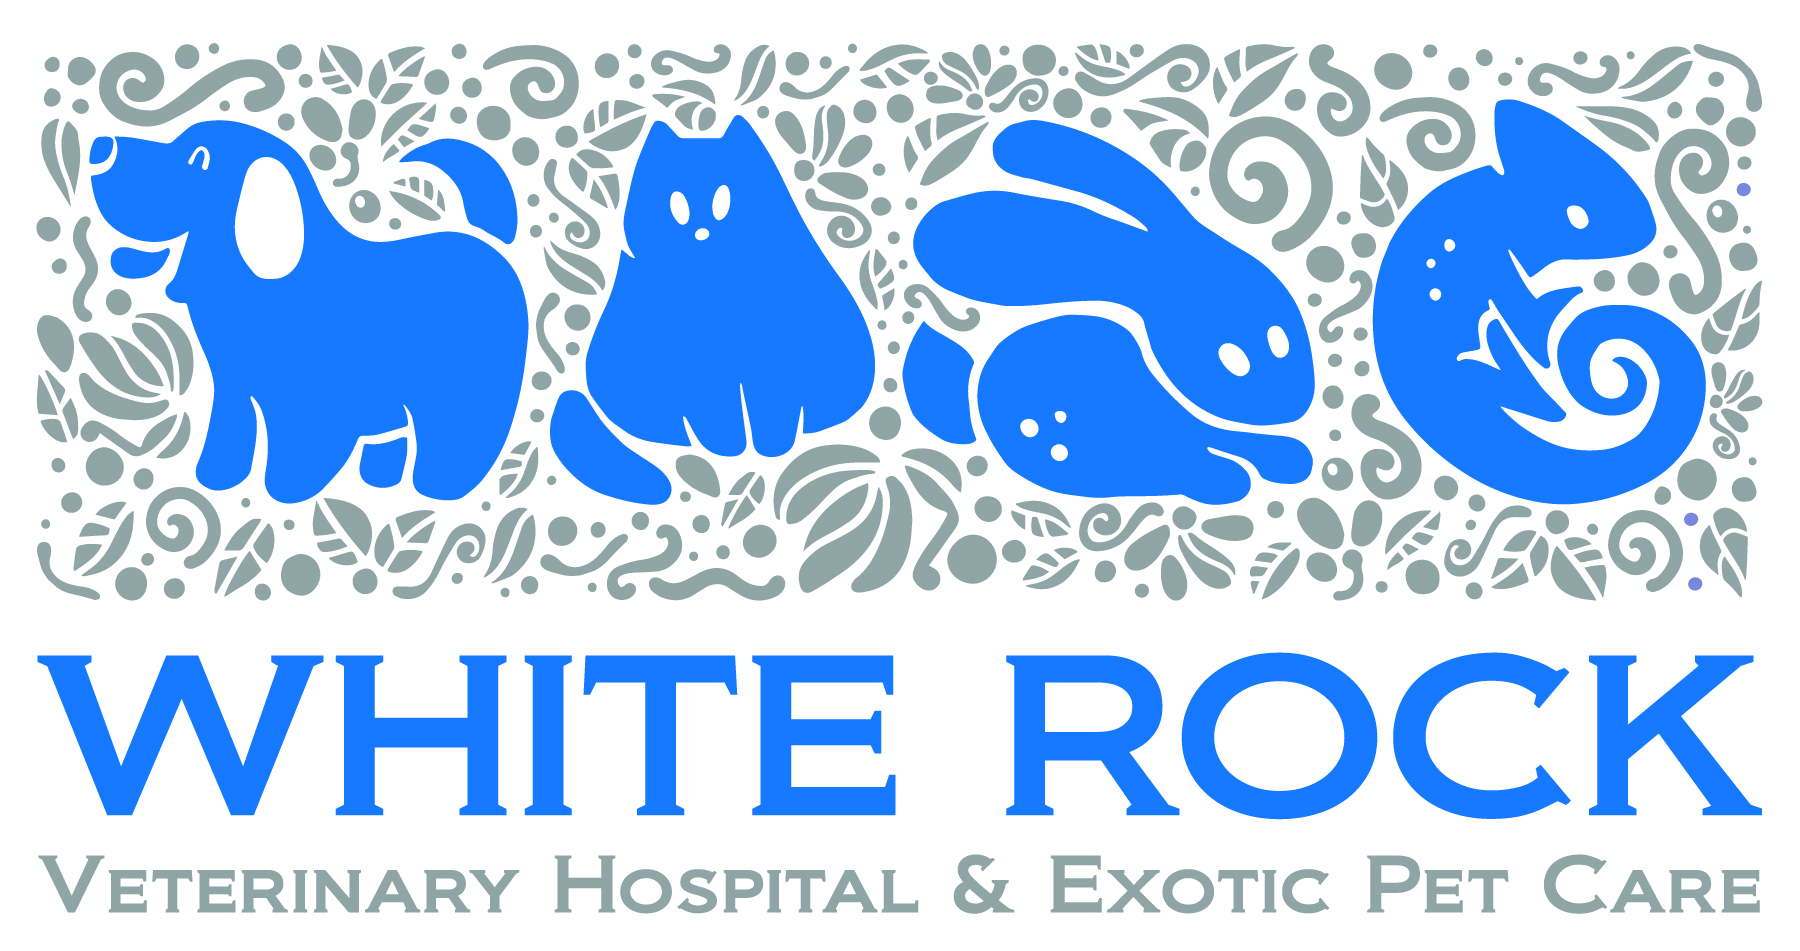 White Rock Veterinary Hospital in Pflugerville, Texas